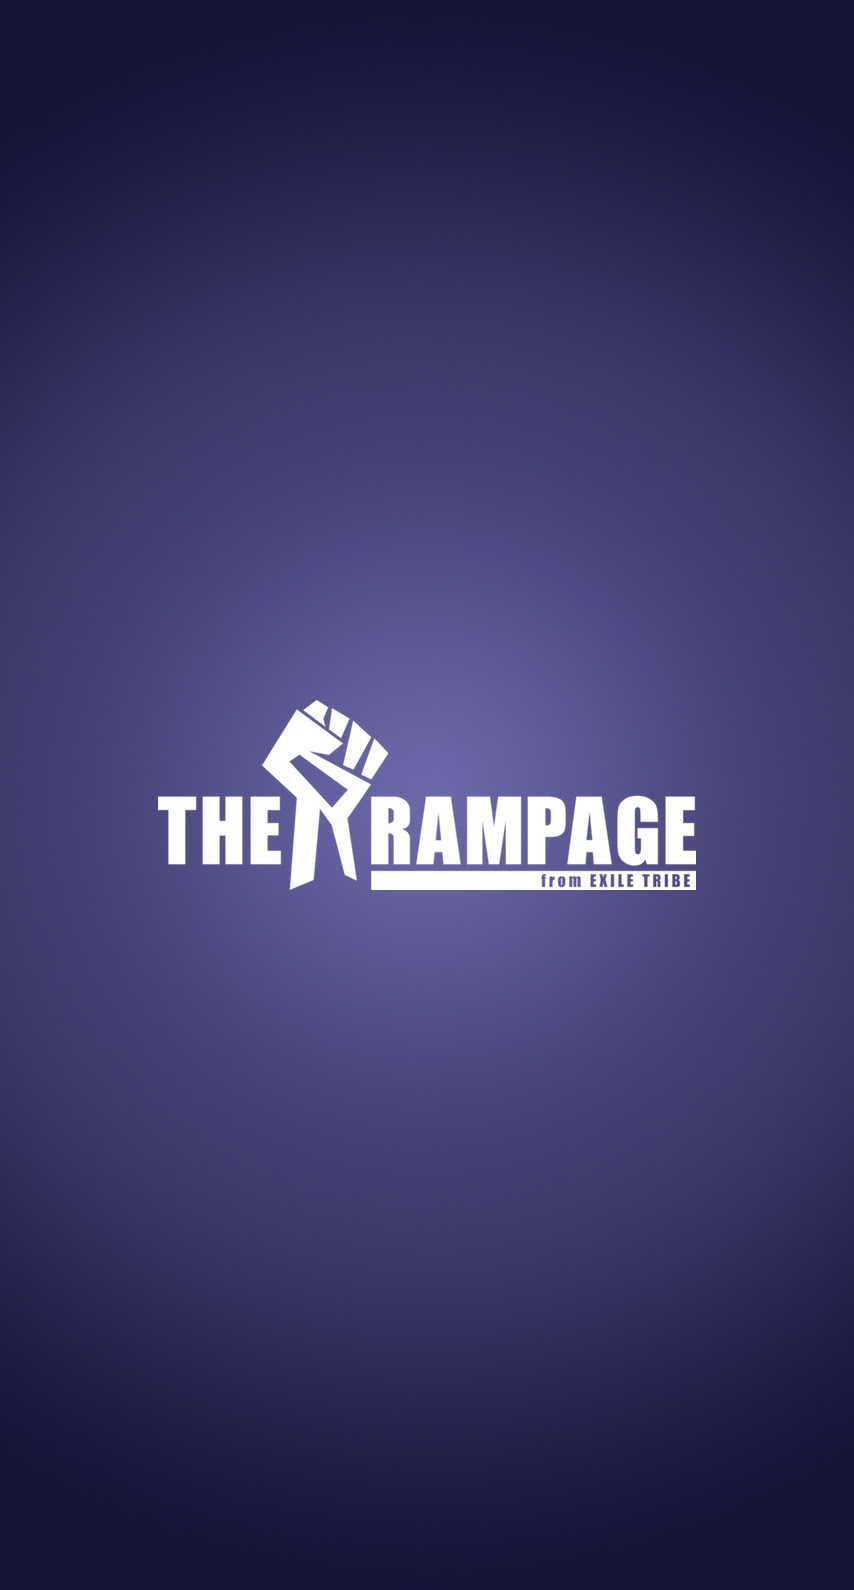 The Rampage From Exile Tribeロゴ めちゃ人気 Iphone壁紙dj